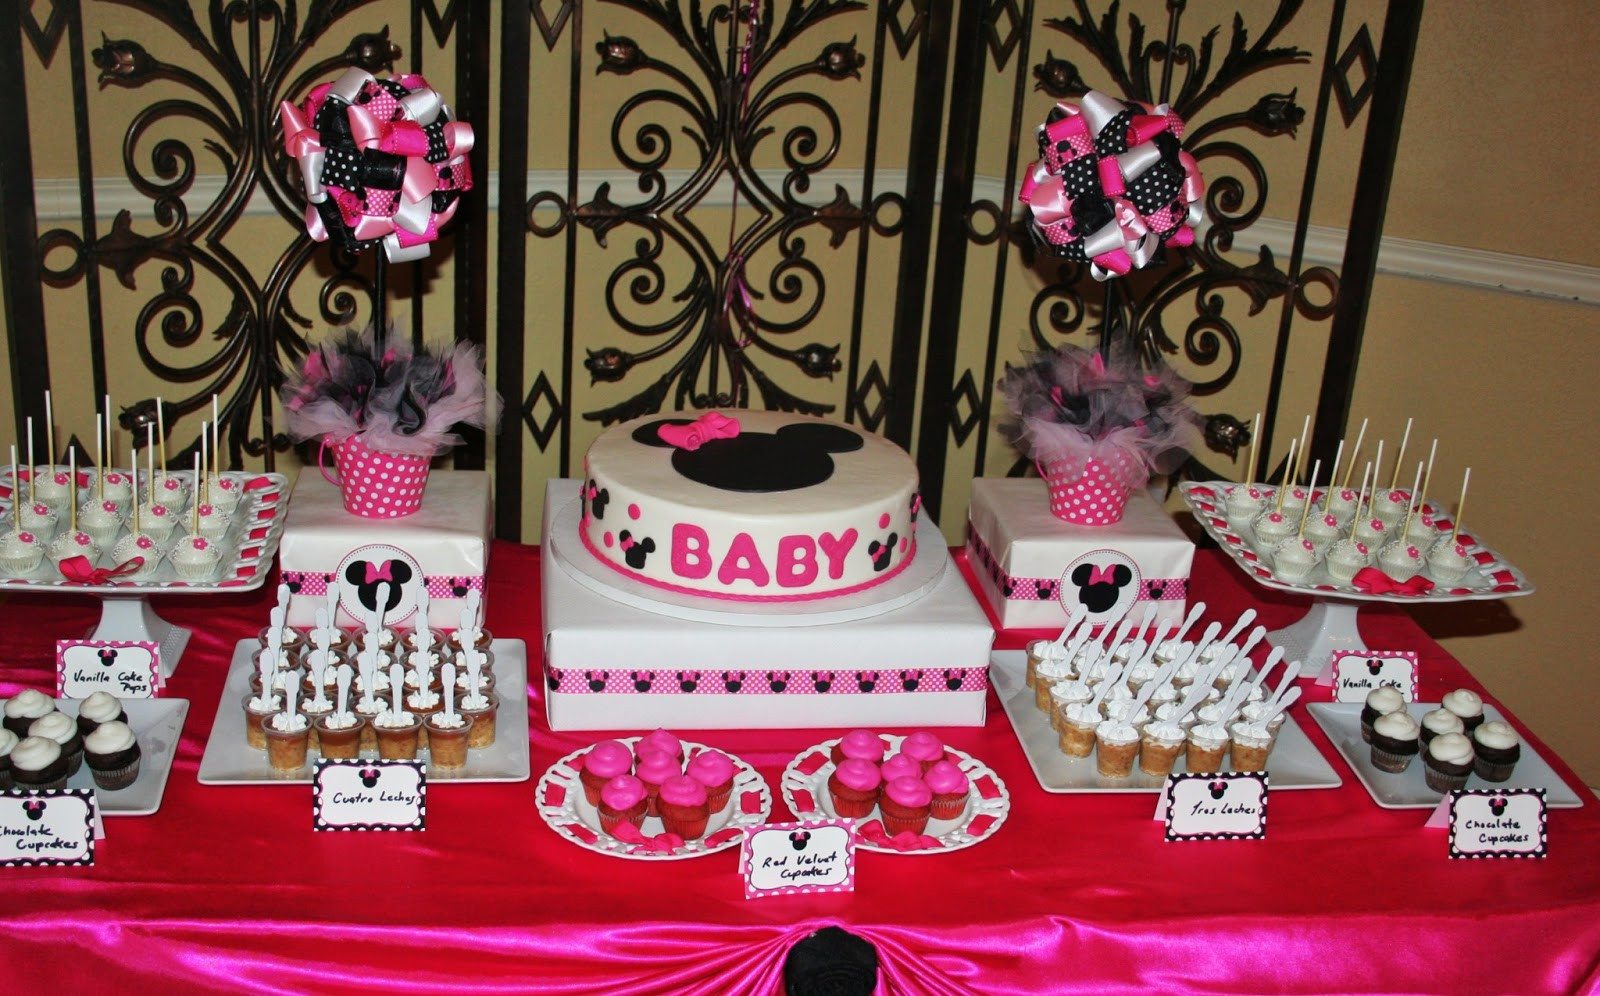 Minnie Mouse Baby Shower Decorations Ideas Lovely Baby Minnie Mouse Baby Shower Decorations